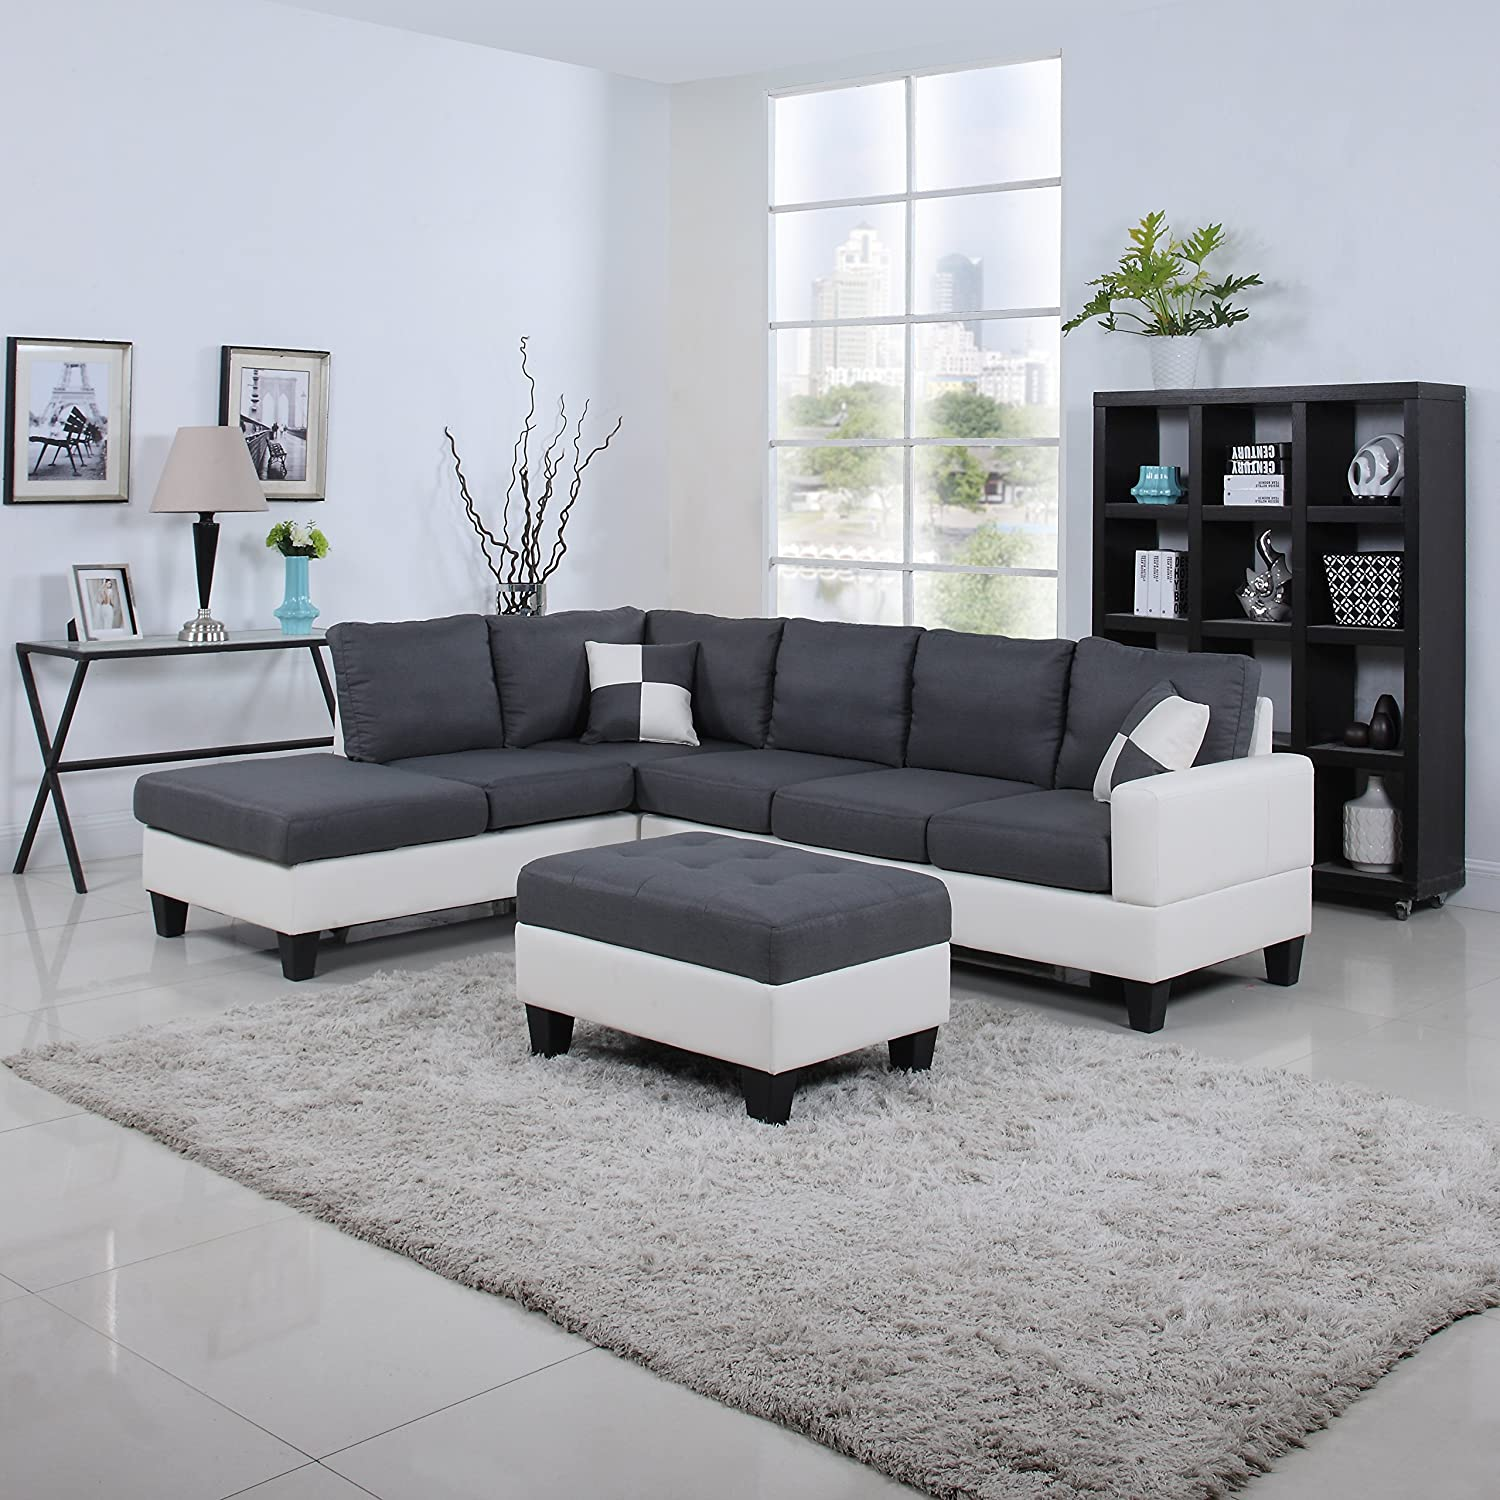 Amazon.com: Classic Two Tone Large Linen Fabric And Bonded Leather Living  Room Sectional Sofa (White / Dark Grey): Kitchen U0026 Dining